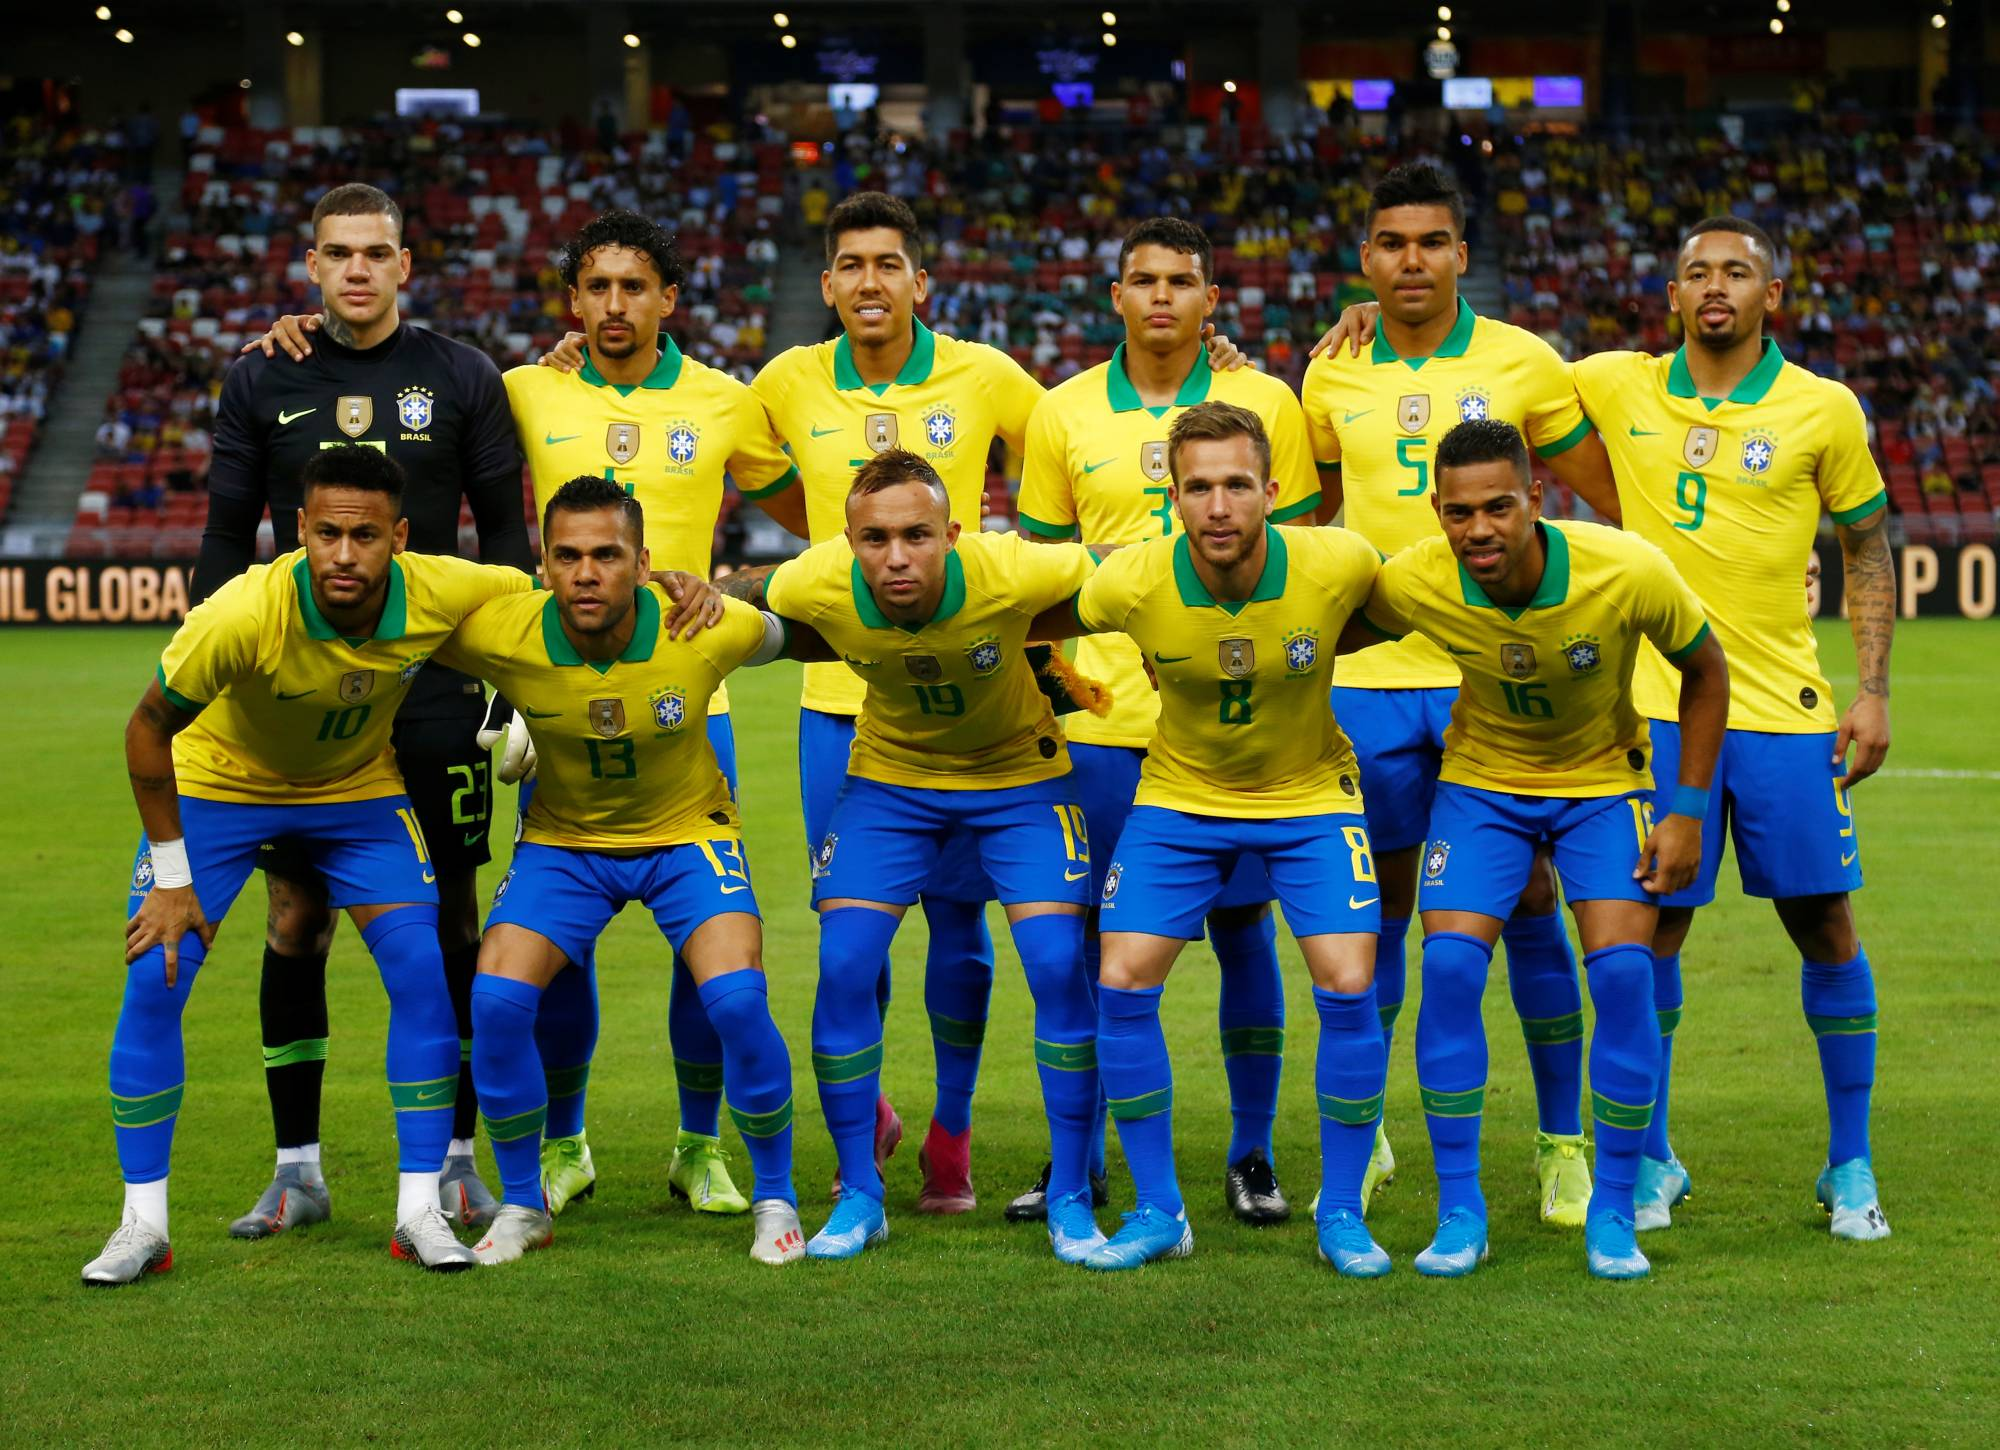 Brazil's World Cup qualifiers against Argentina and Colombia scheduled for later this month are among a number of fixtures that have been postponed due to coronavirus-related travel restrictions in South America. | REUTERS